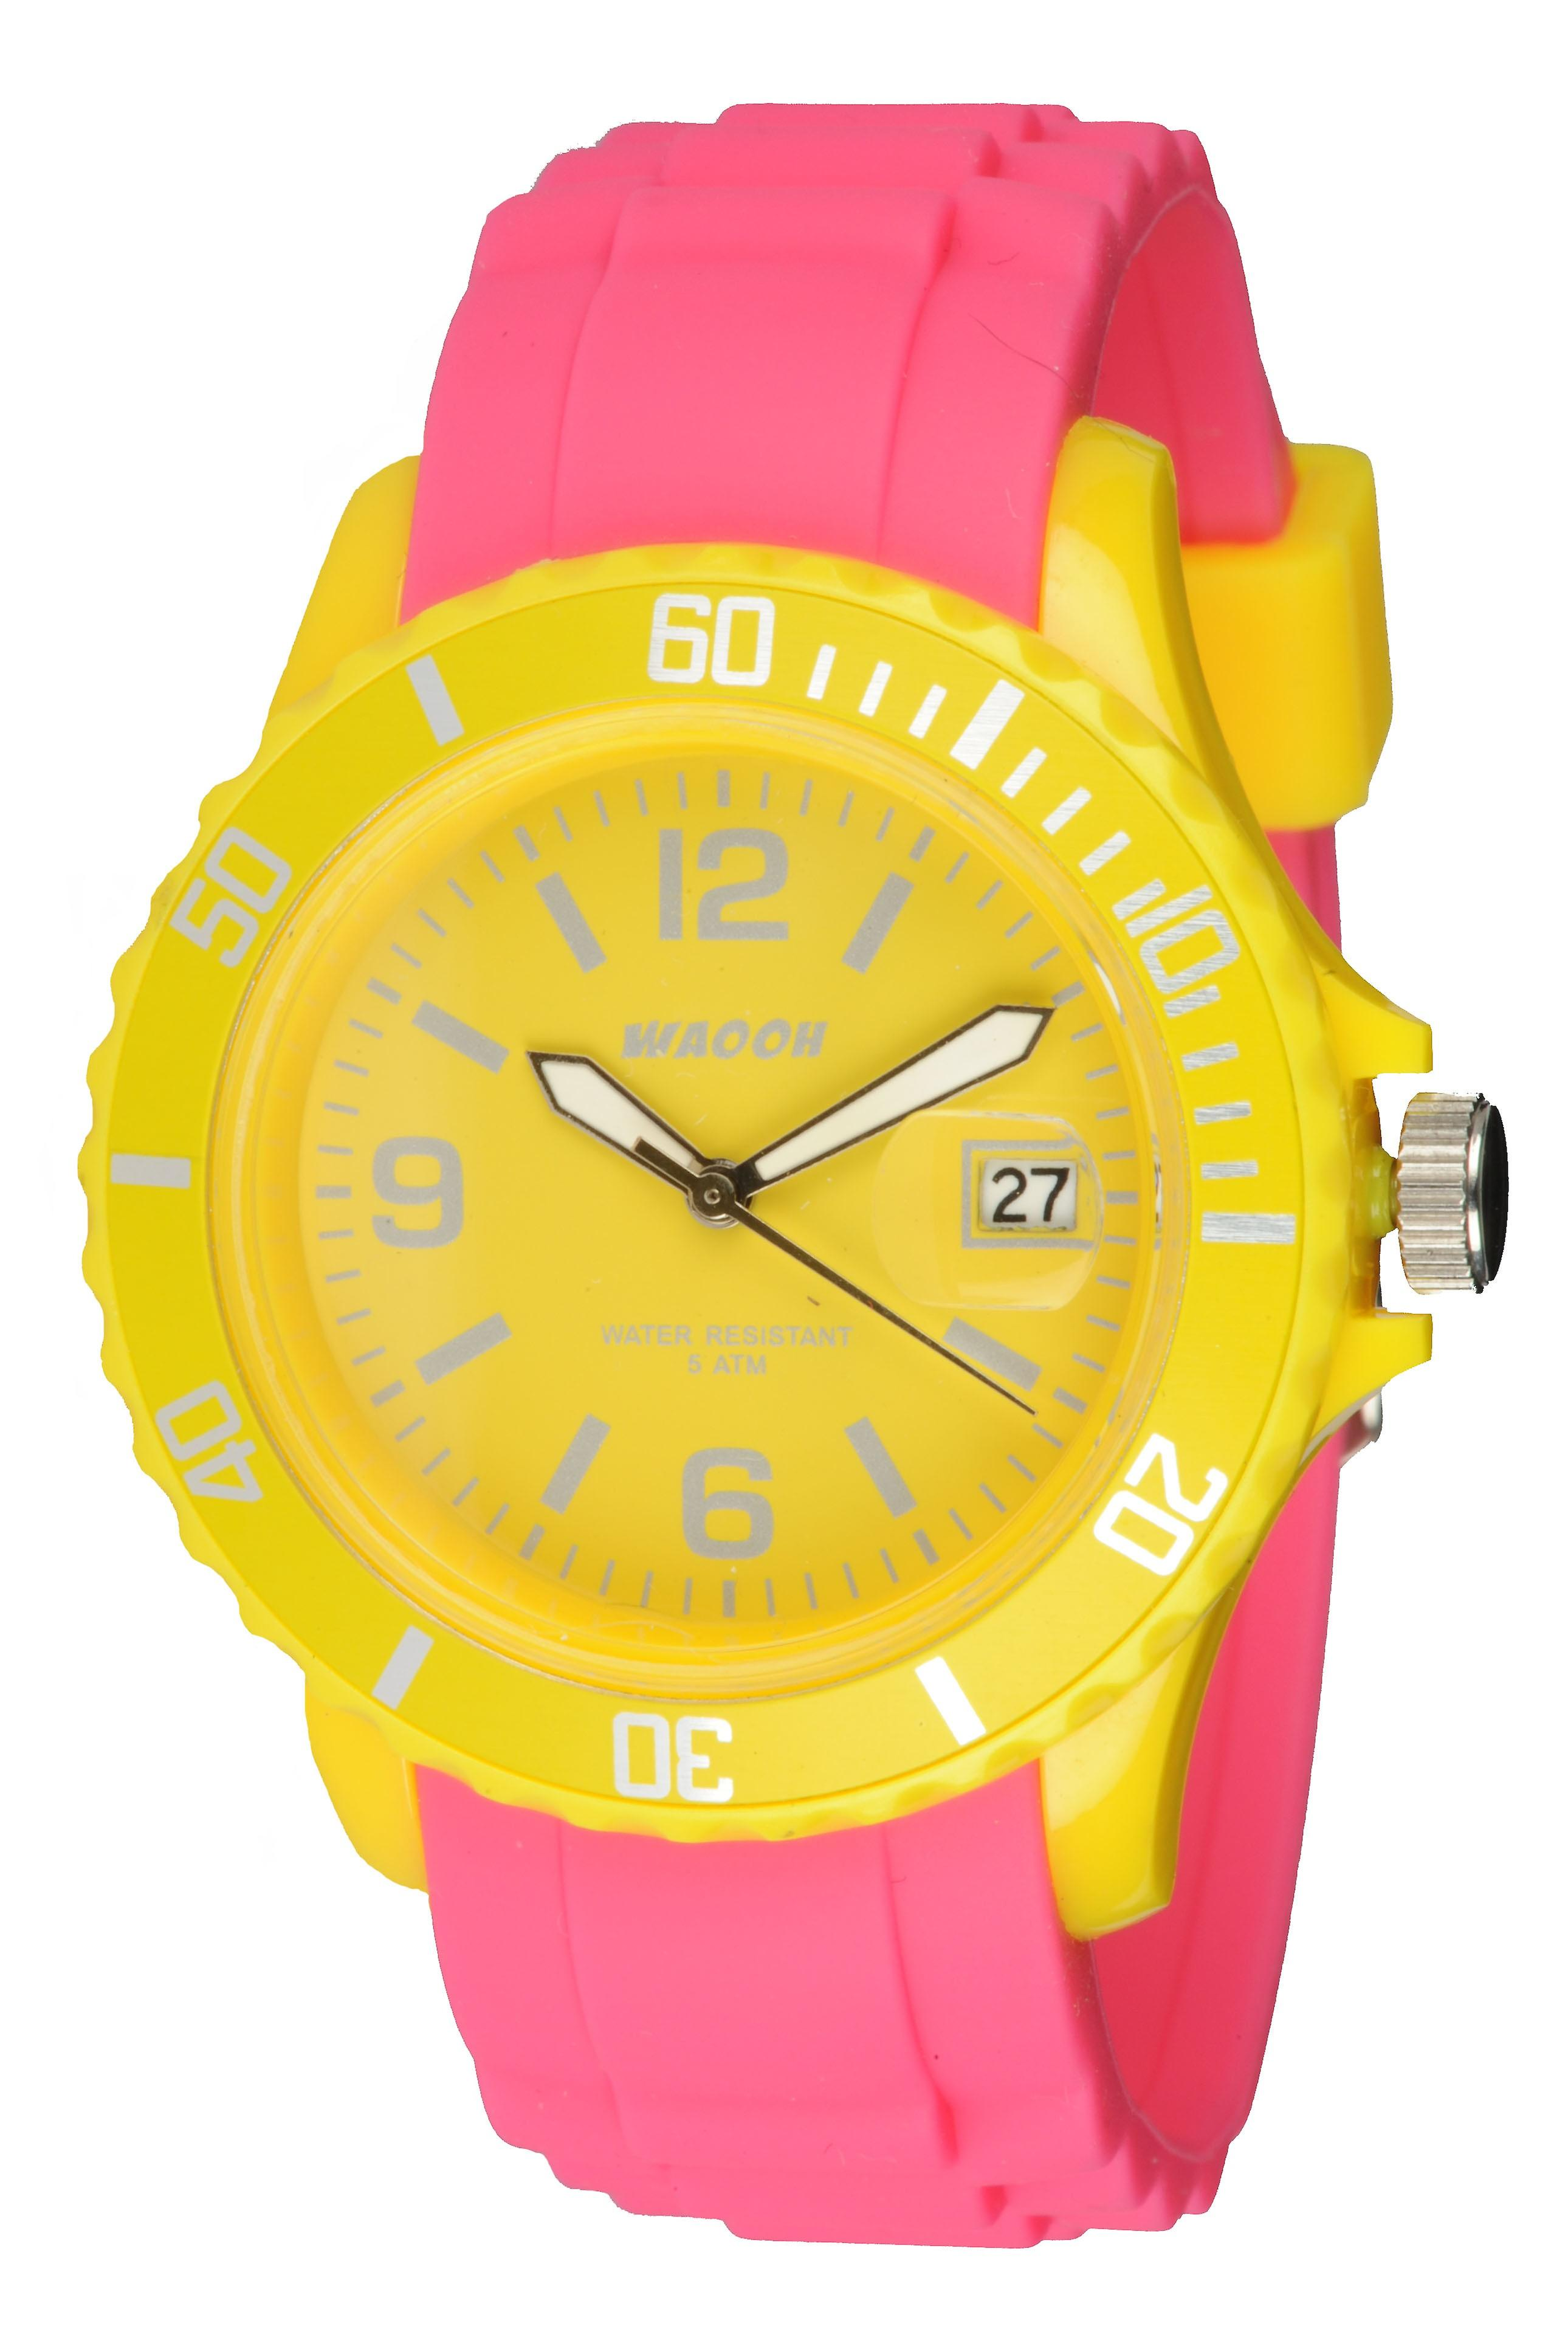 Waooh - Monaco34 Watch - Two Tone & Yellow